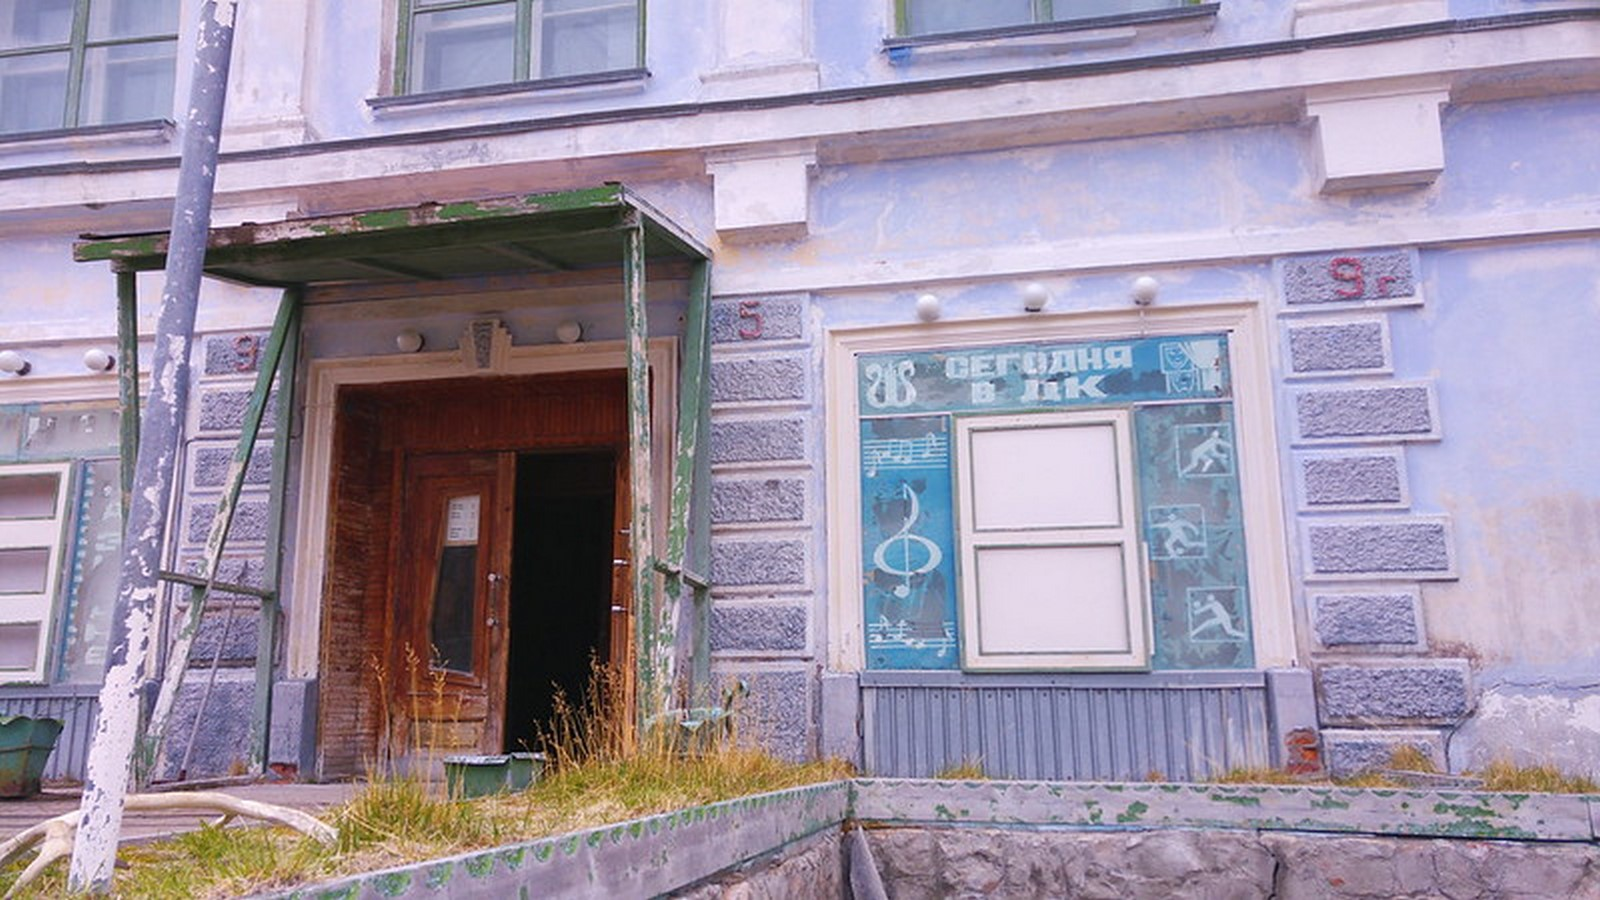 Lost In Time: Pyramiden, Norway - Sheet9